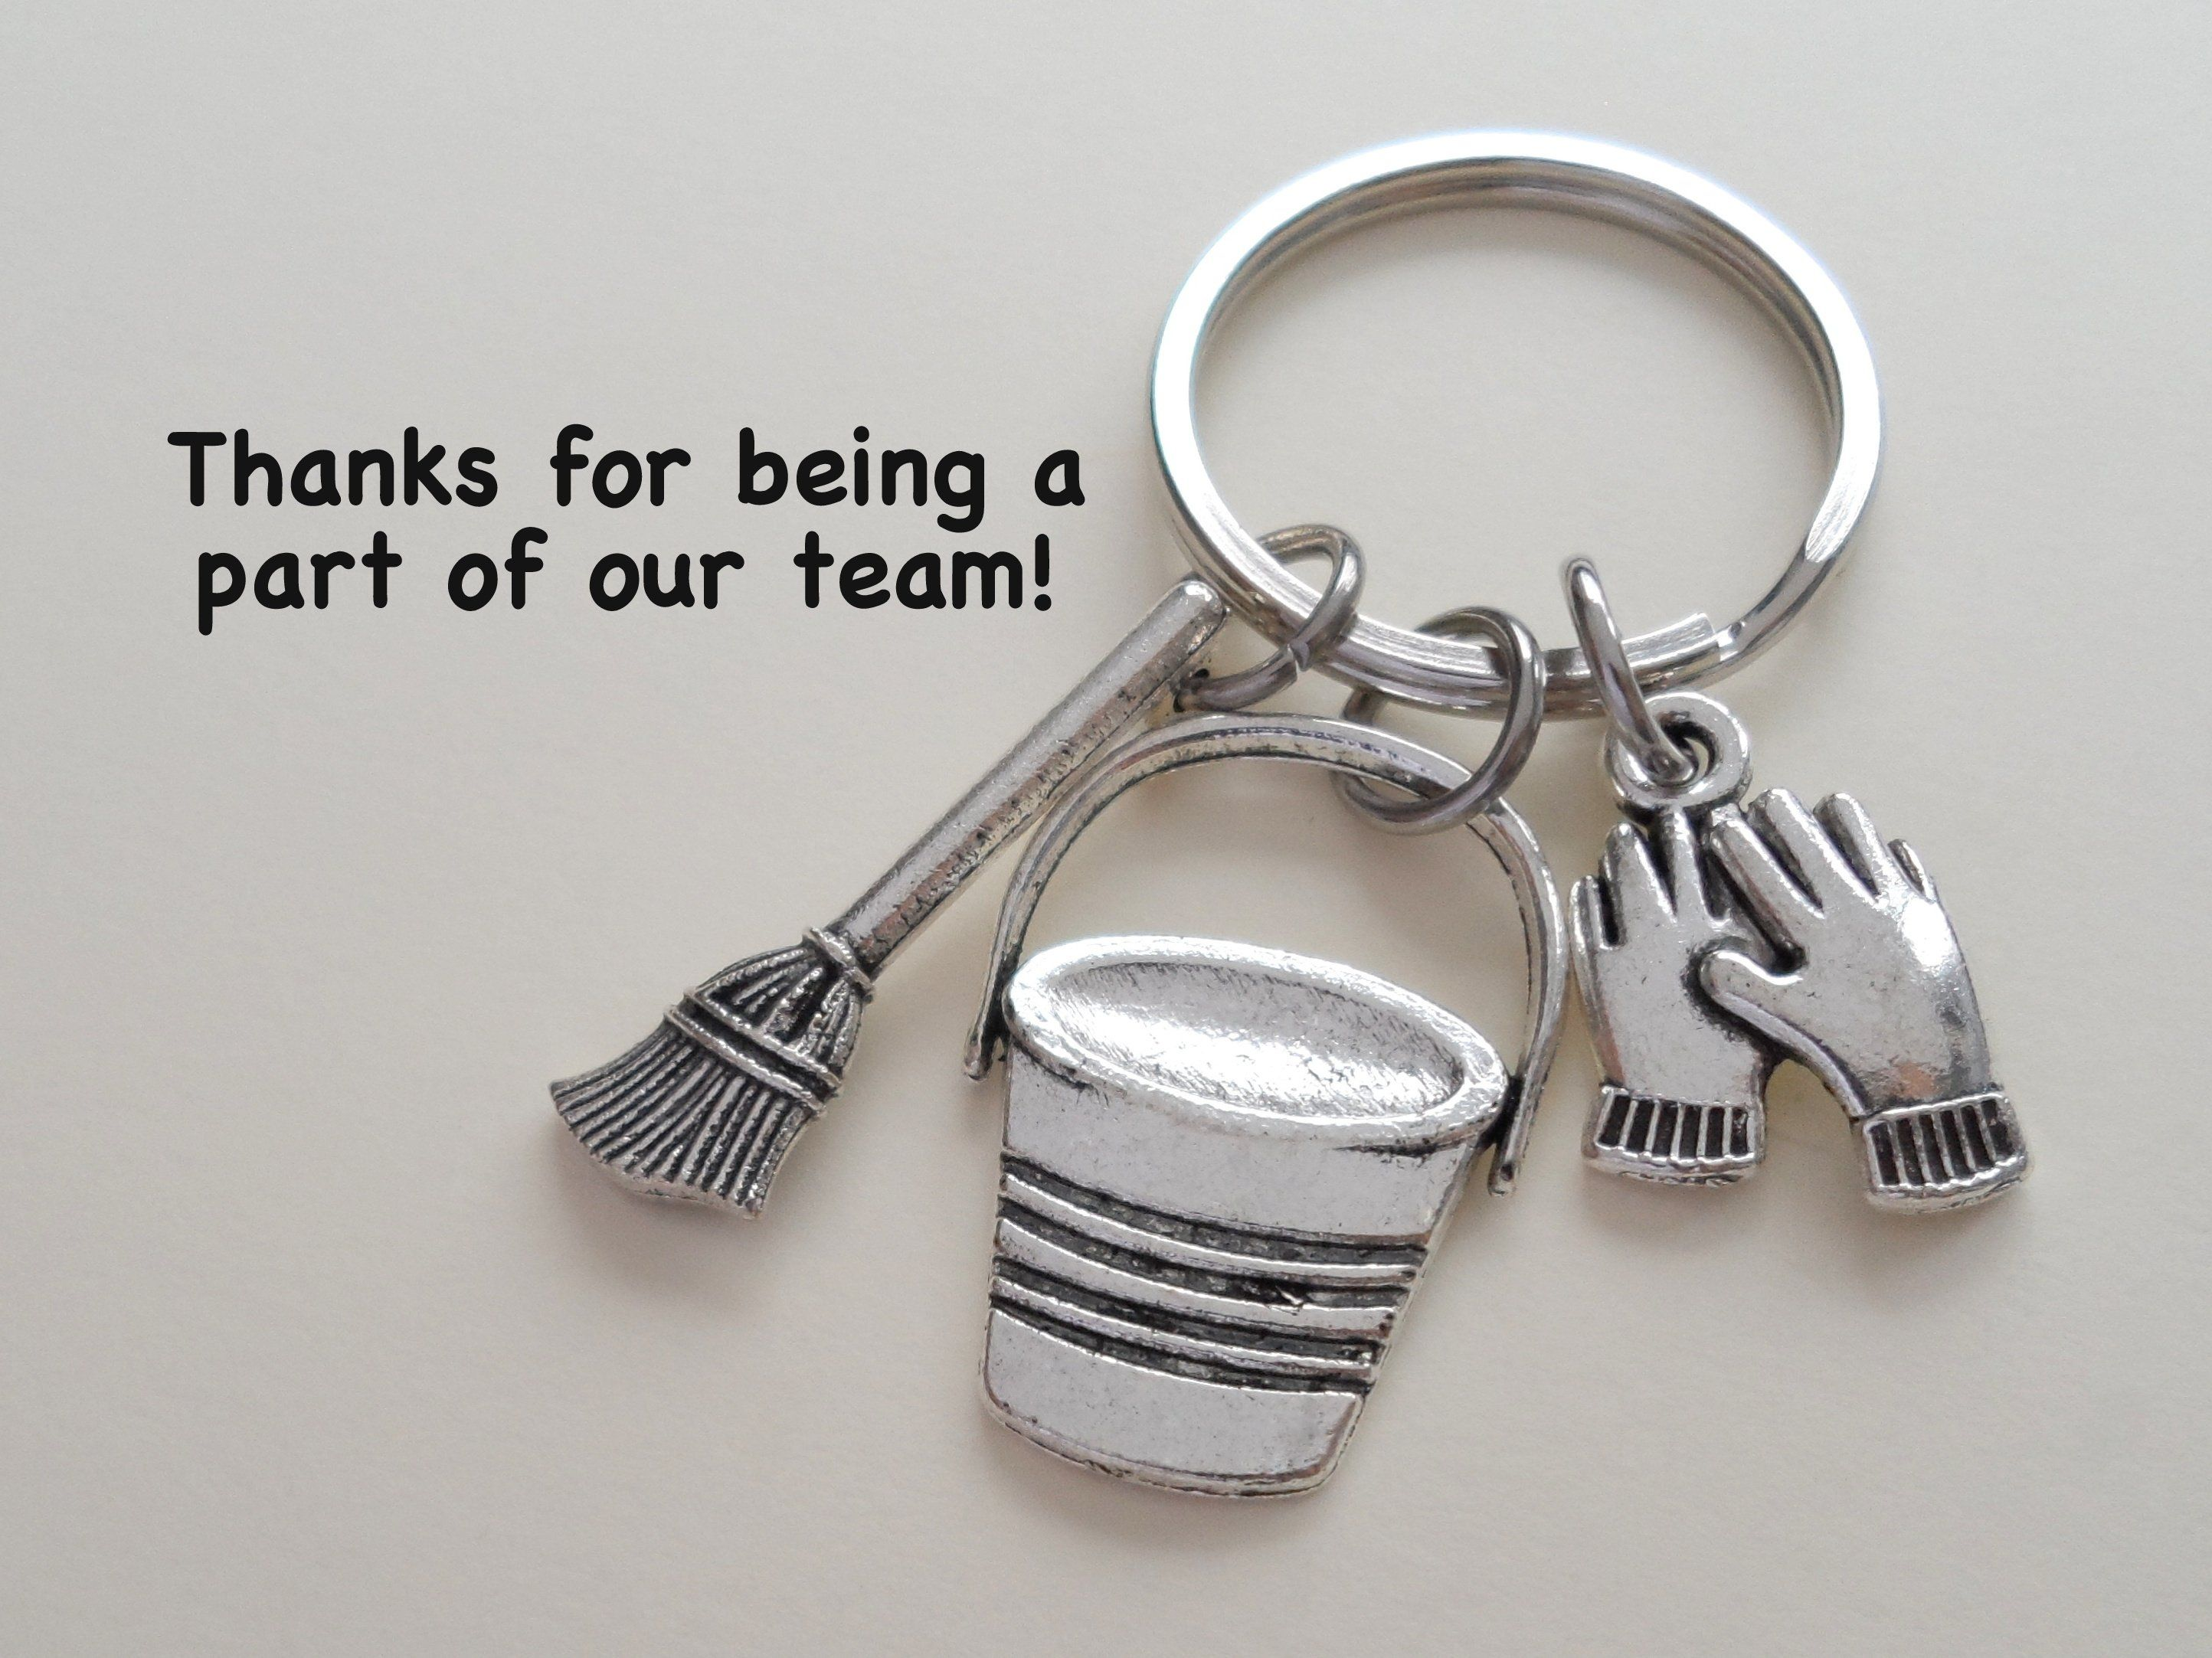 Housekeeping Appreciation Gift Keychain; Bucket, Broom, Work Gloves Charm Keychain #custodianappreciationgifts